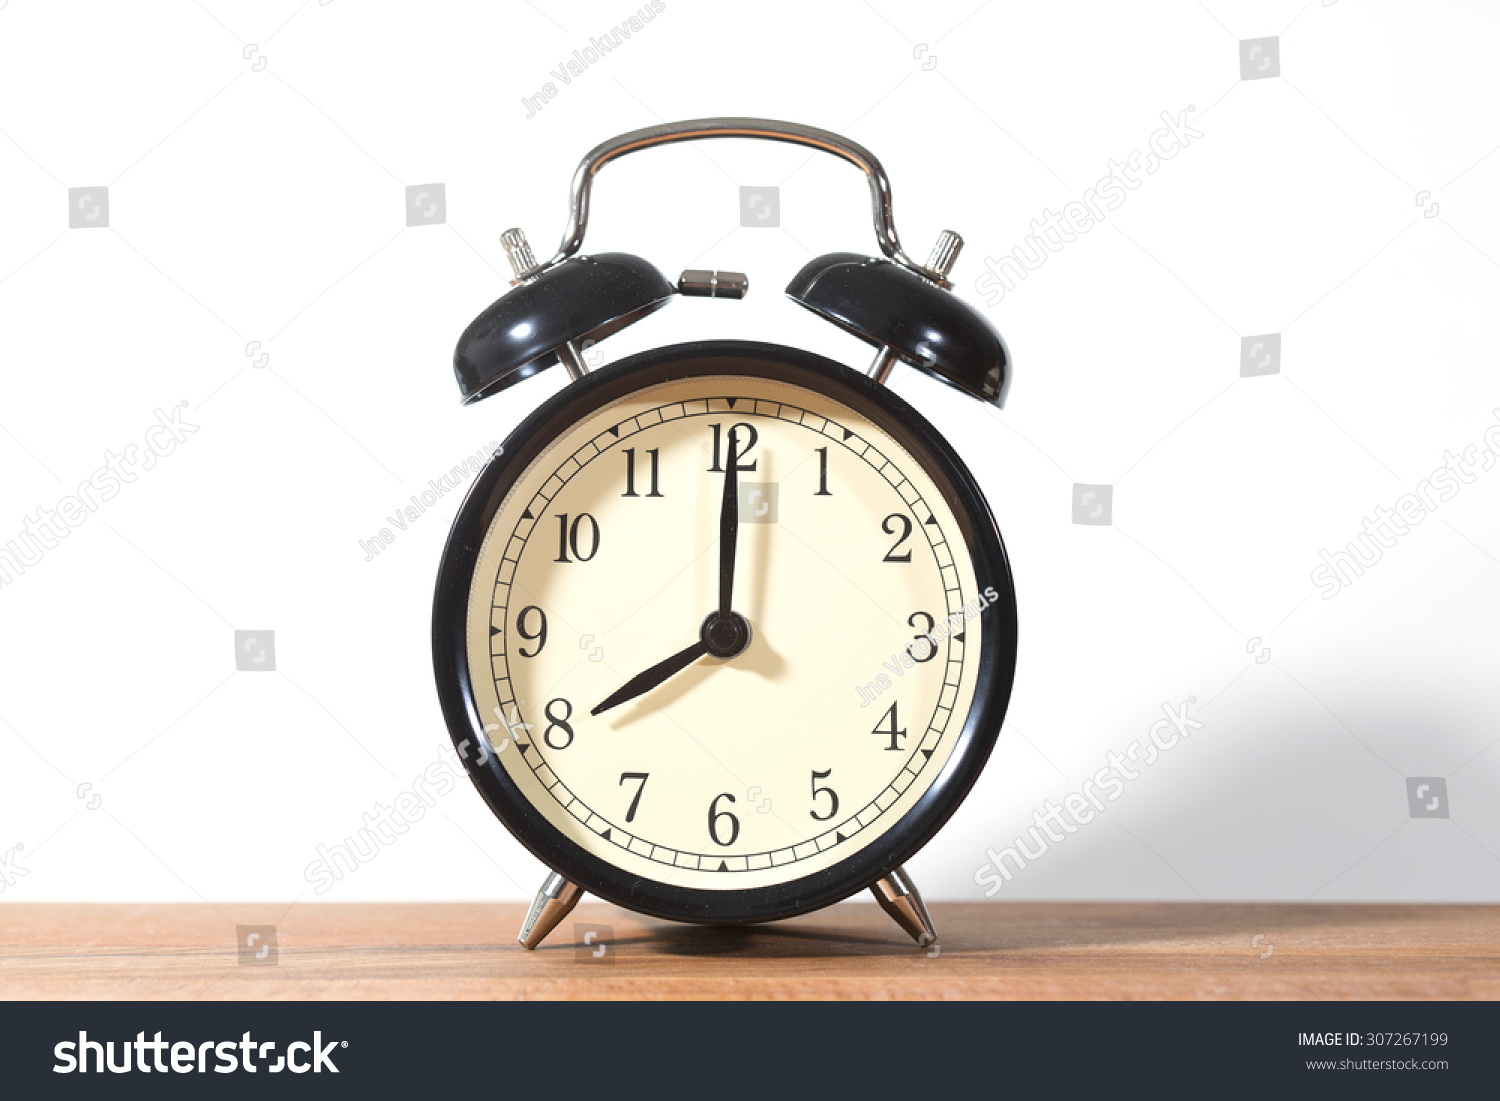 an analysis of eight oclock Learn vocabulary, terms, and more with flashcards, games, and other study tools an analysis of eight oclock u k radio caroline began testing on 648 khz early on saturday morning with.